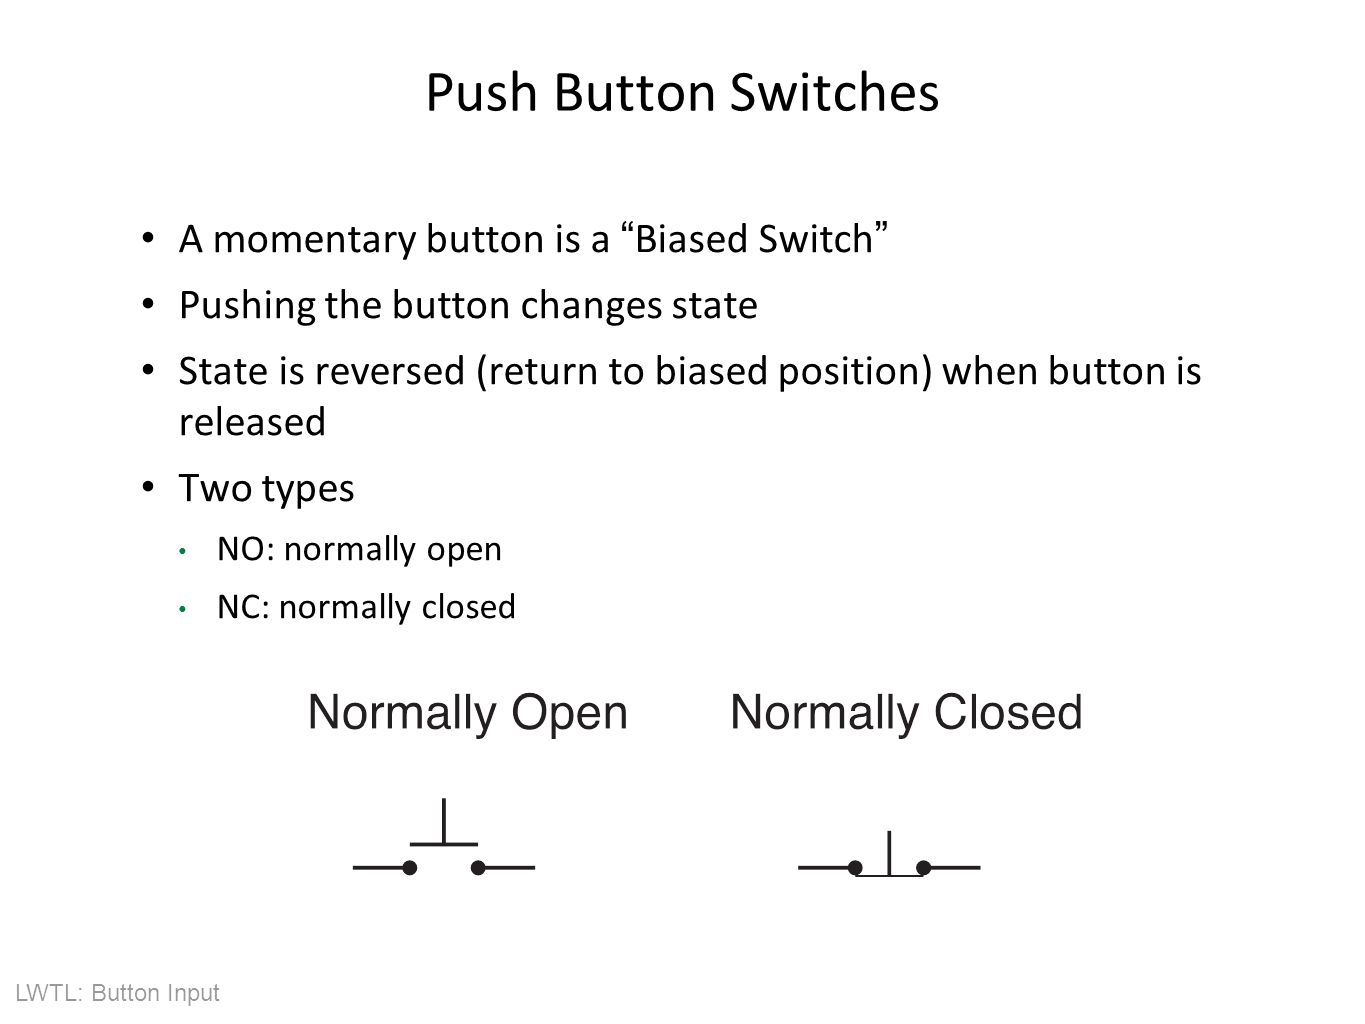 LWTL: Button Input Push Button Switches A momentary button is a Biased Switch Pushing the button changes state State is reversed (return to biased position) when button is released Two types NO: normally open NC: normally closed